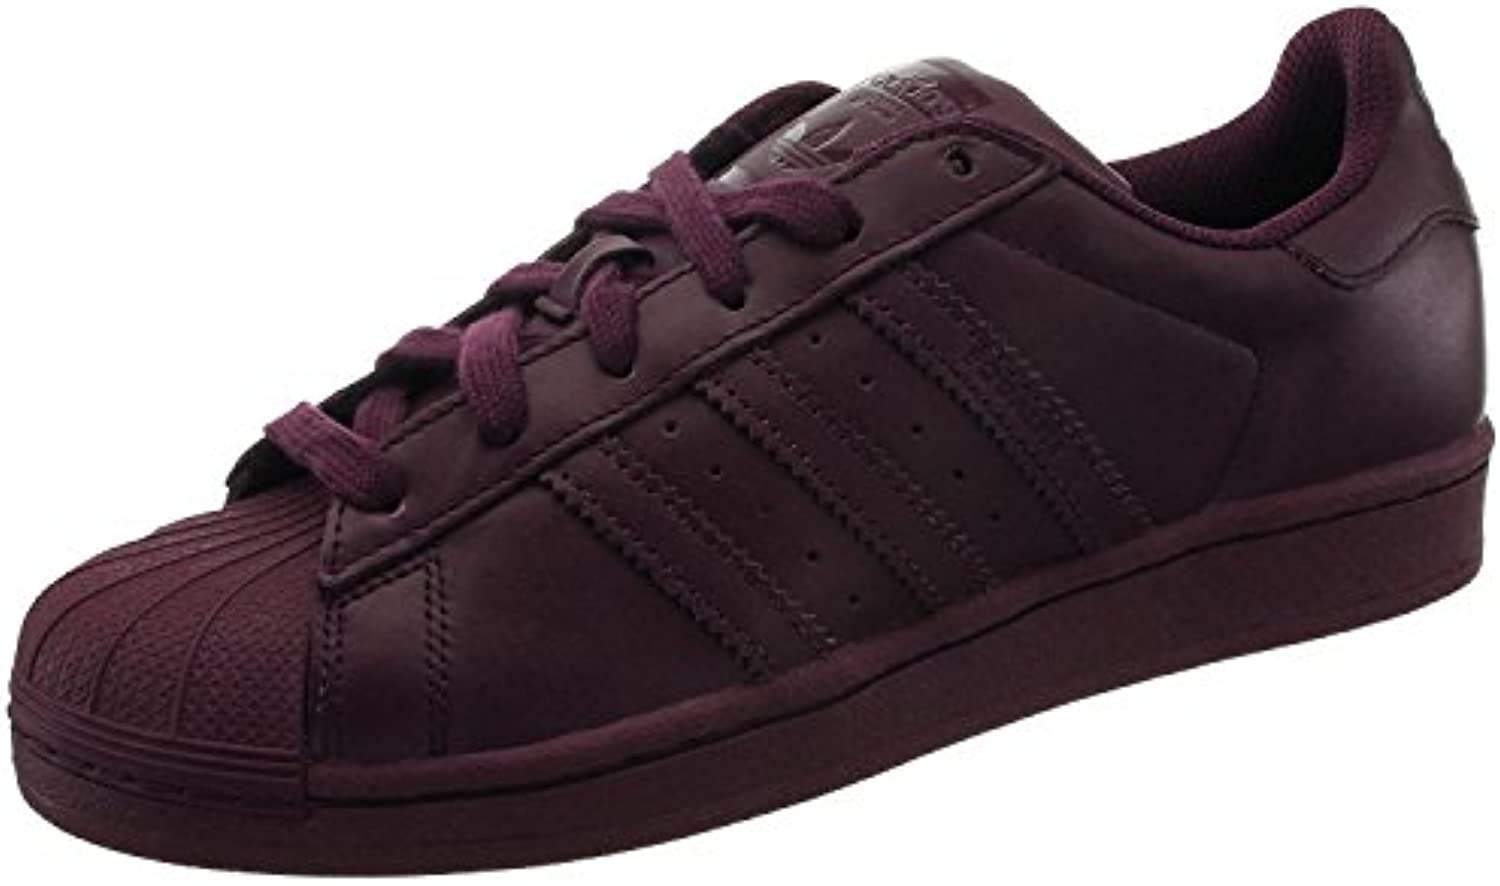 adidas Superstar Supercolor Pack S41838 Herren Sneakers/Freizeitschuhe/Low Top Sneakers Rot